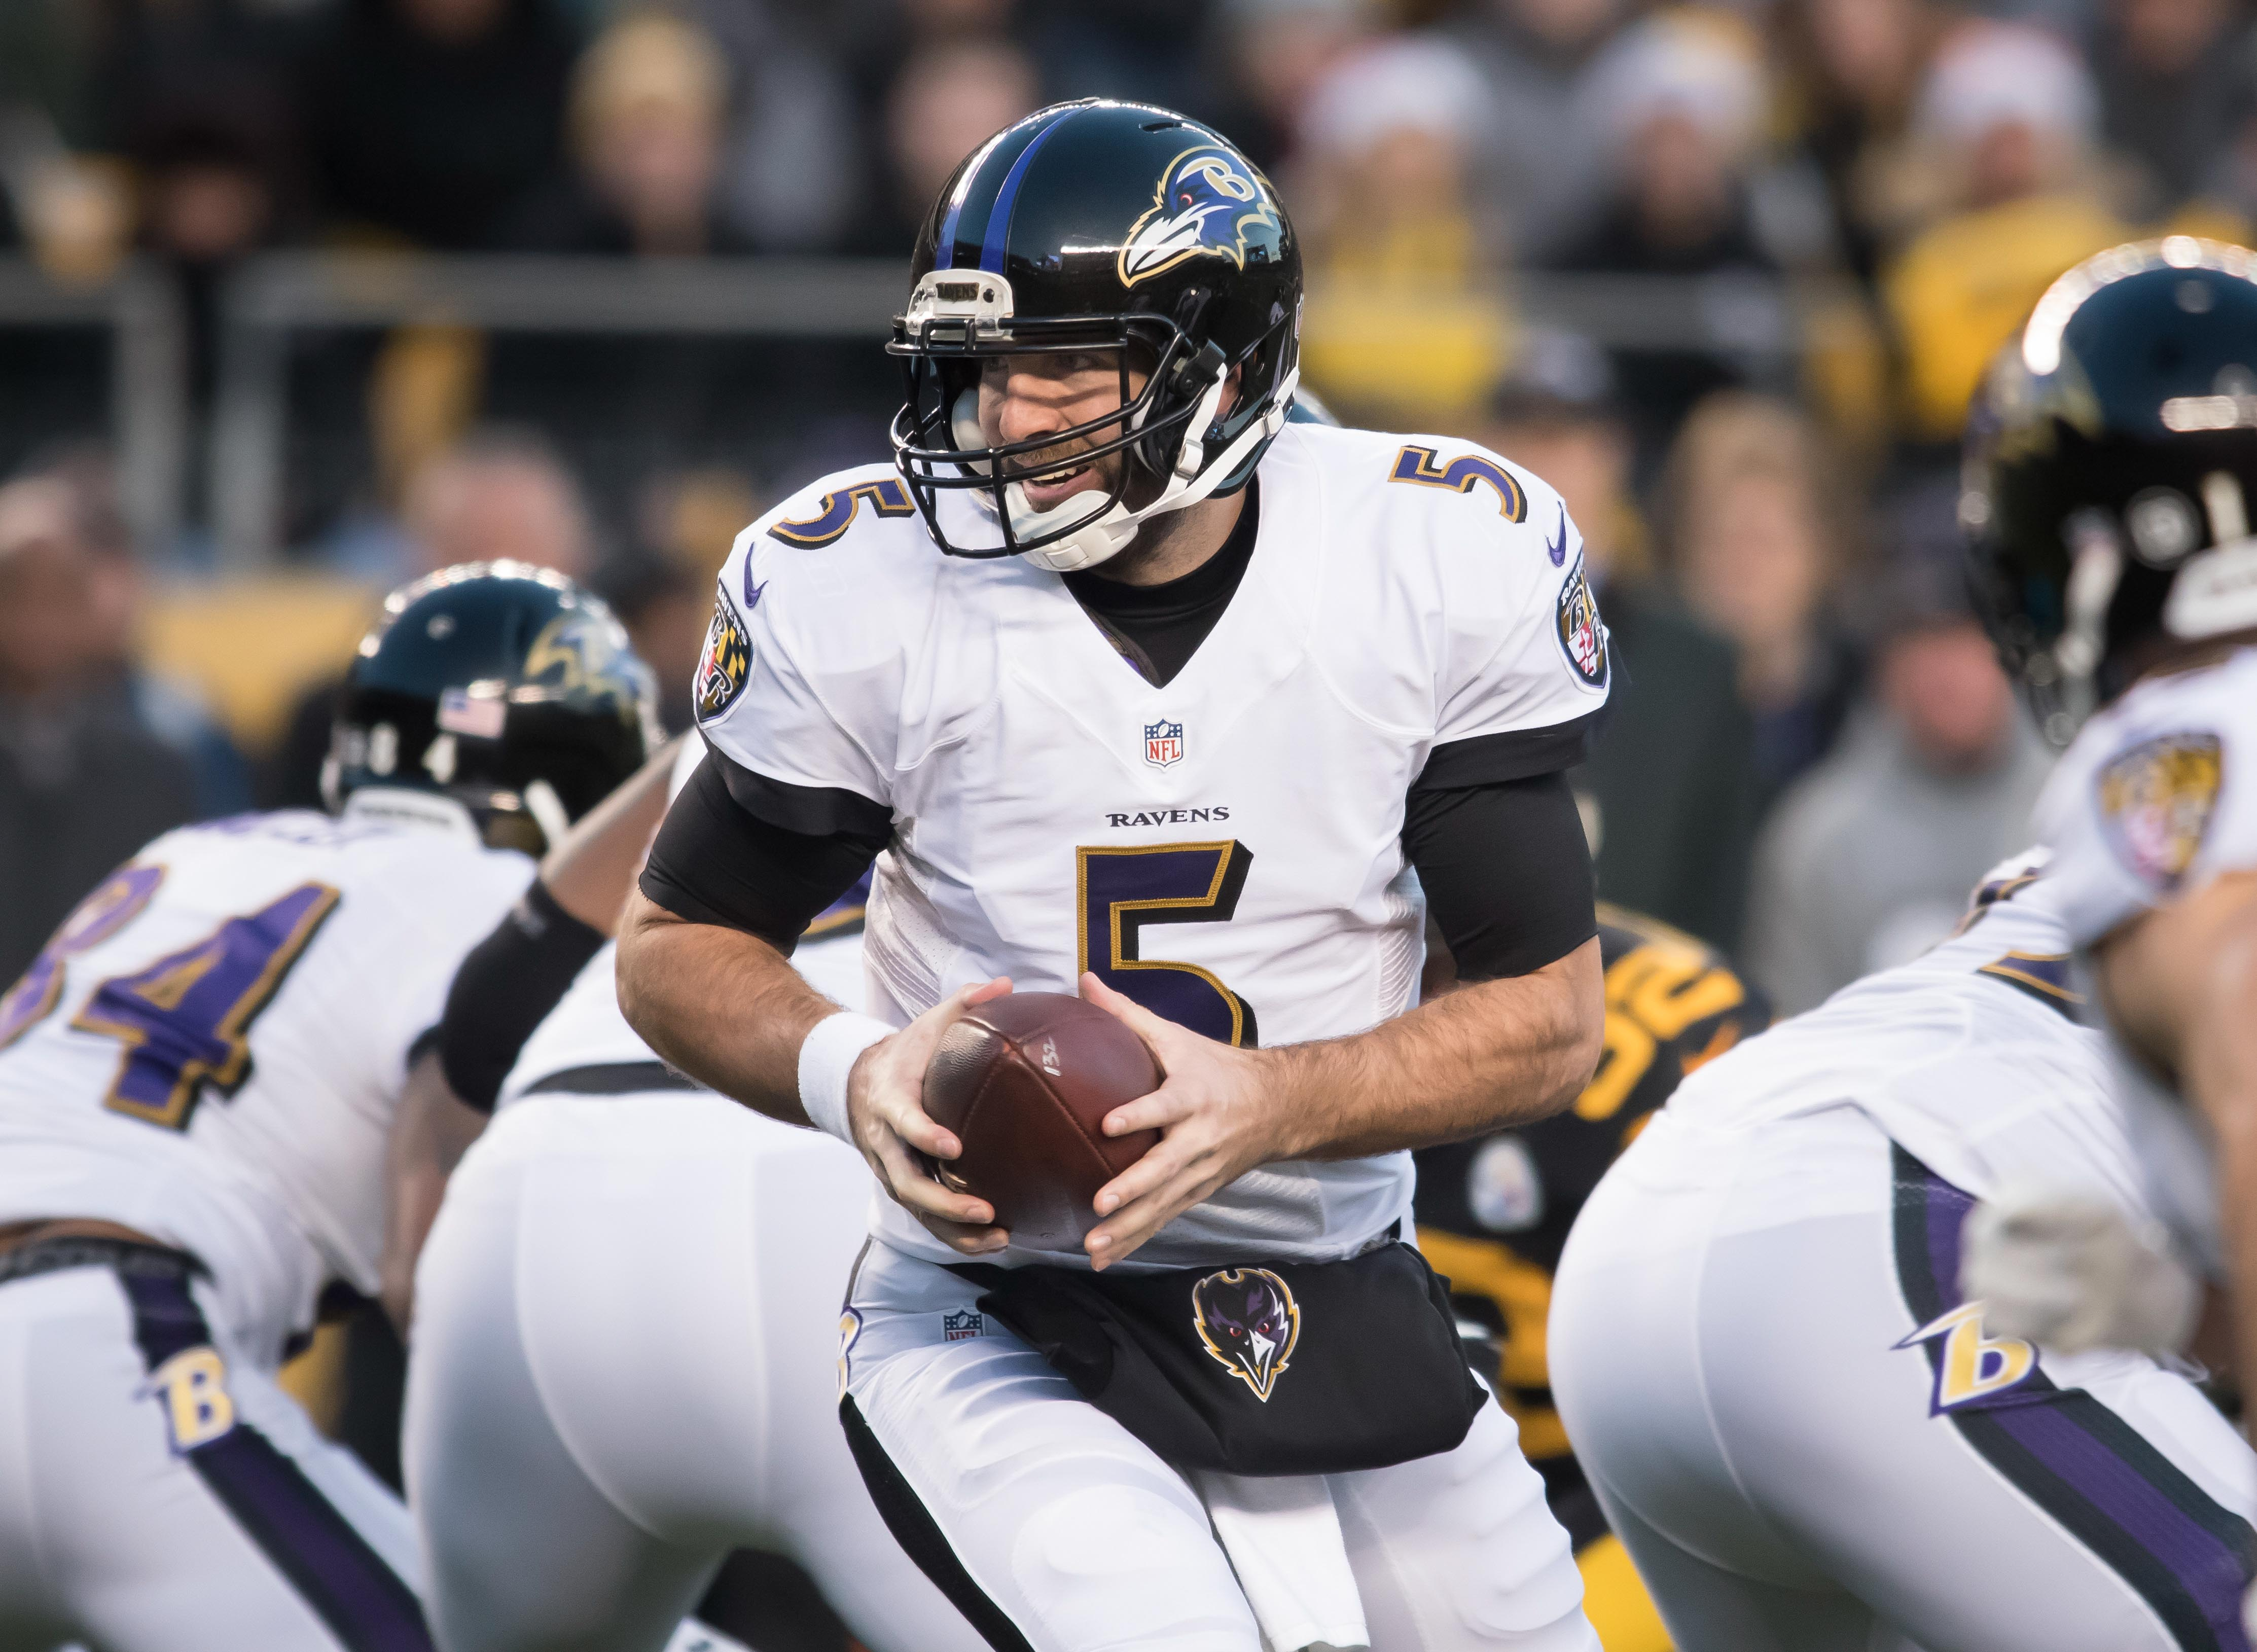 9785764-nfl-baltimore-ravens-at-pittsburgh-steelers